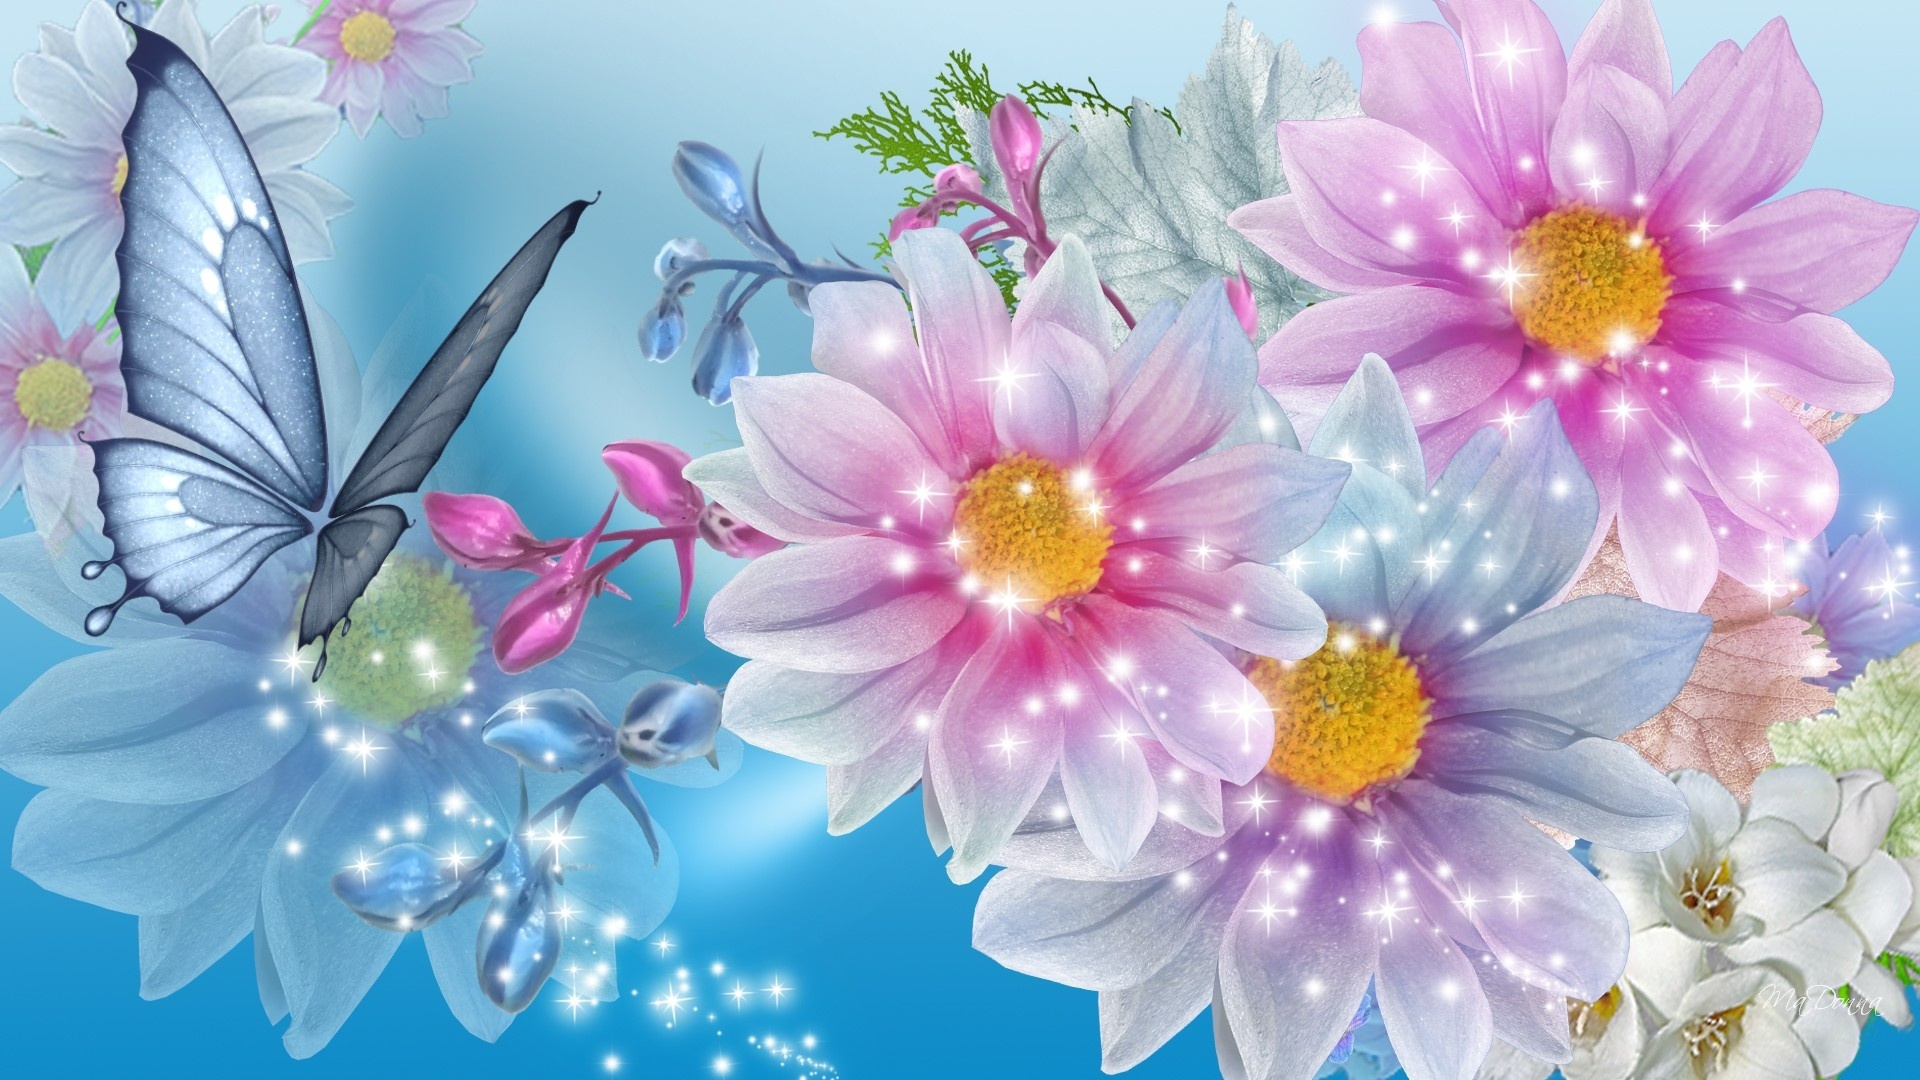 Wallpapers Of Flowers